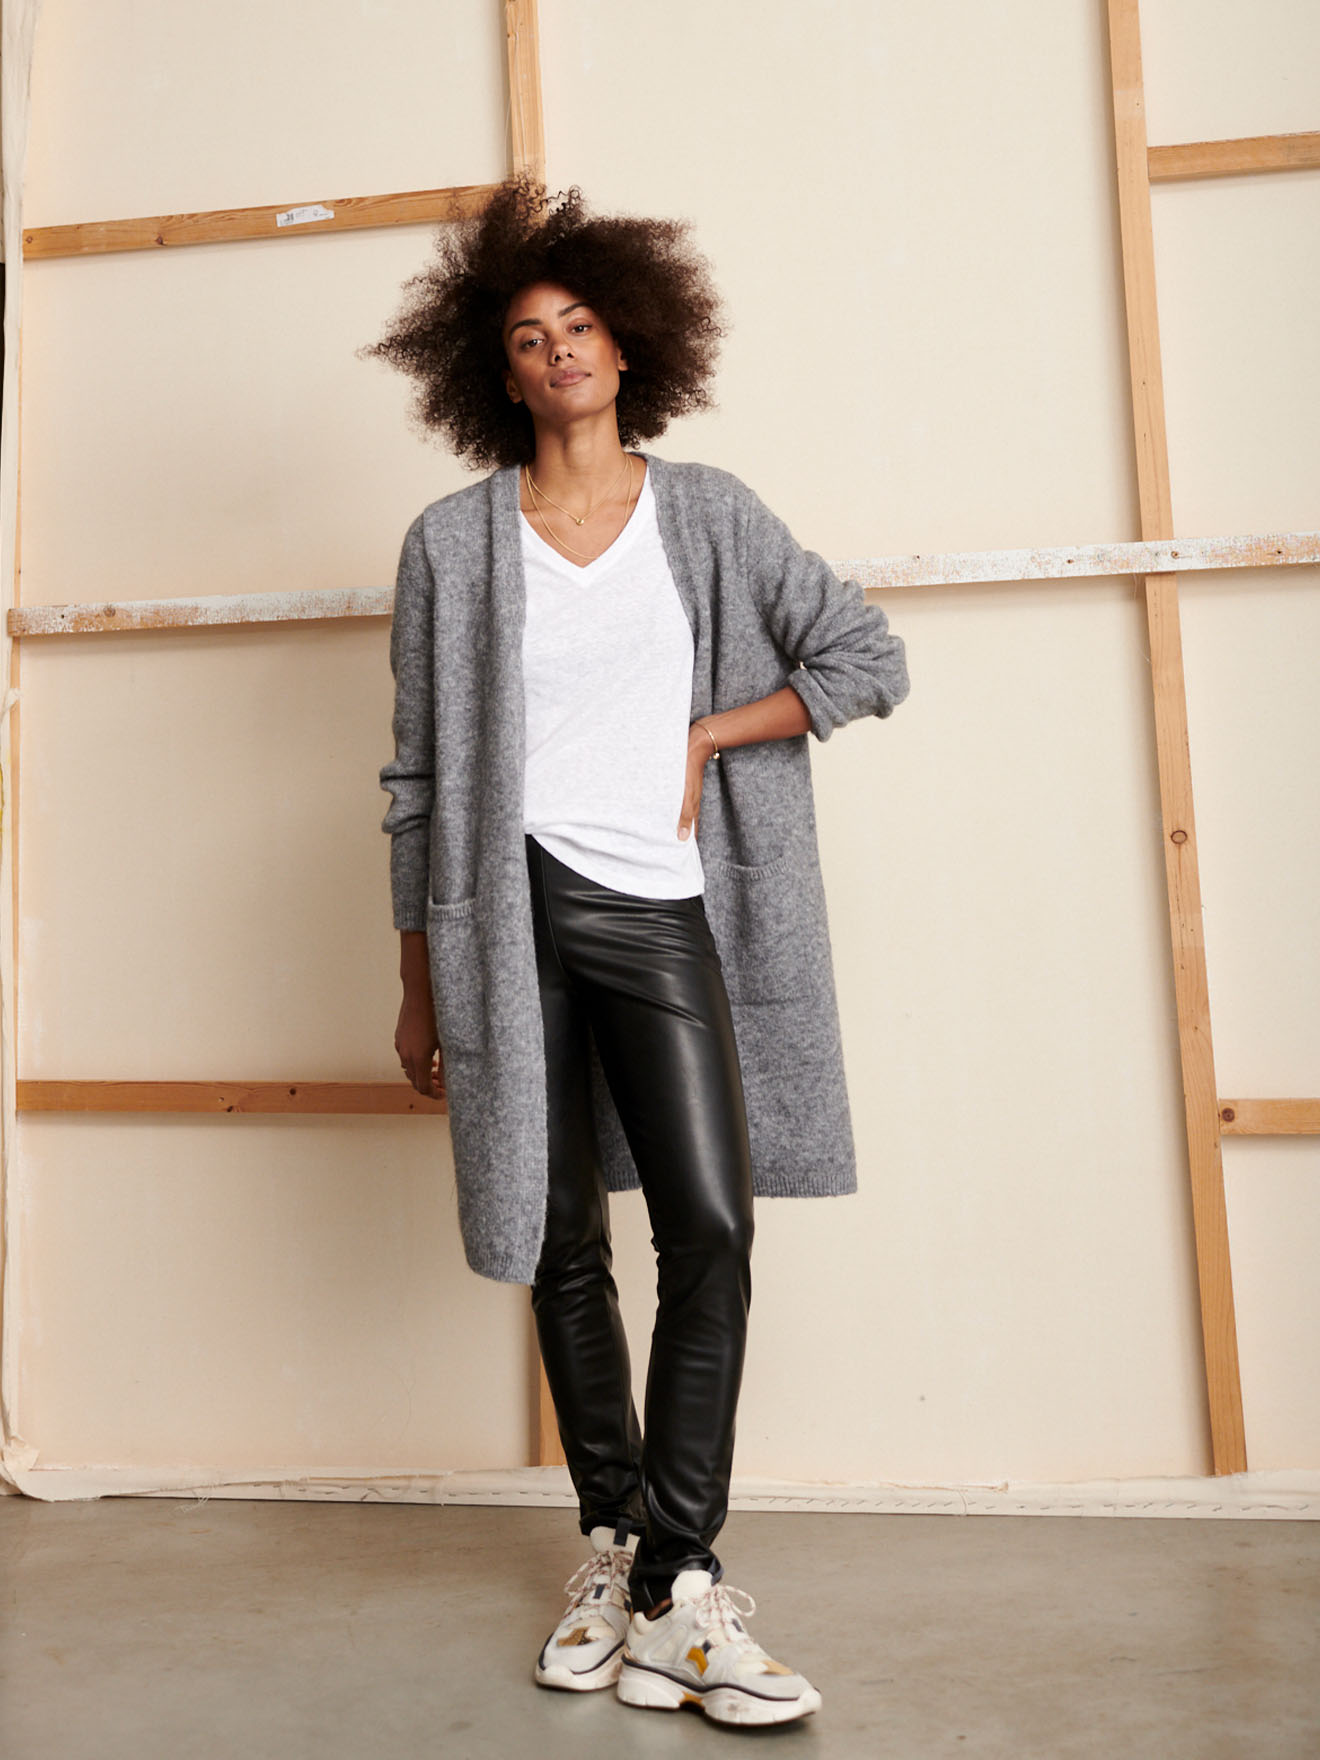 alchemist-look-winter-fashion_A02-HK0284_look2